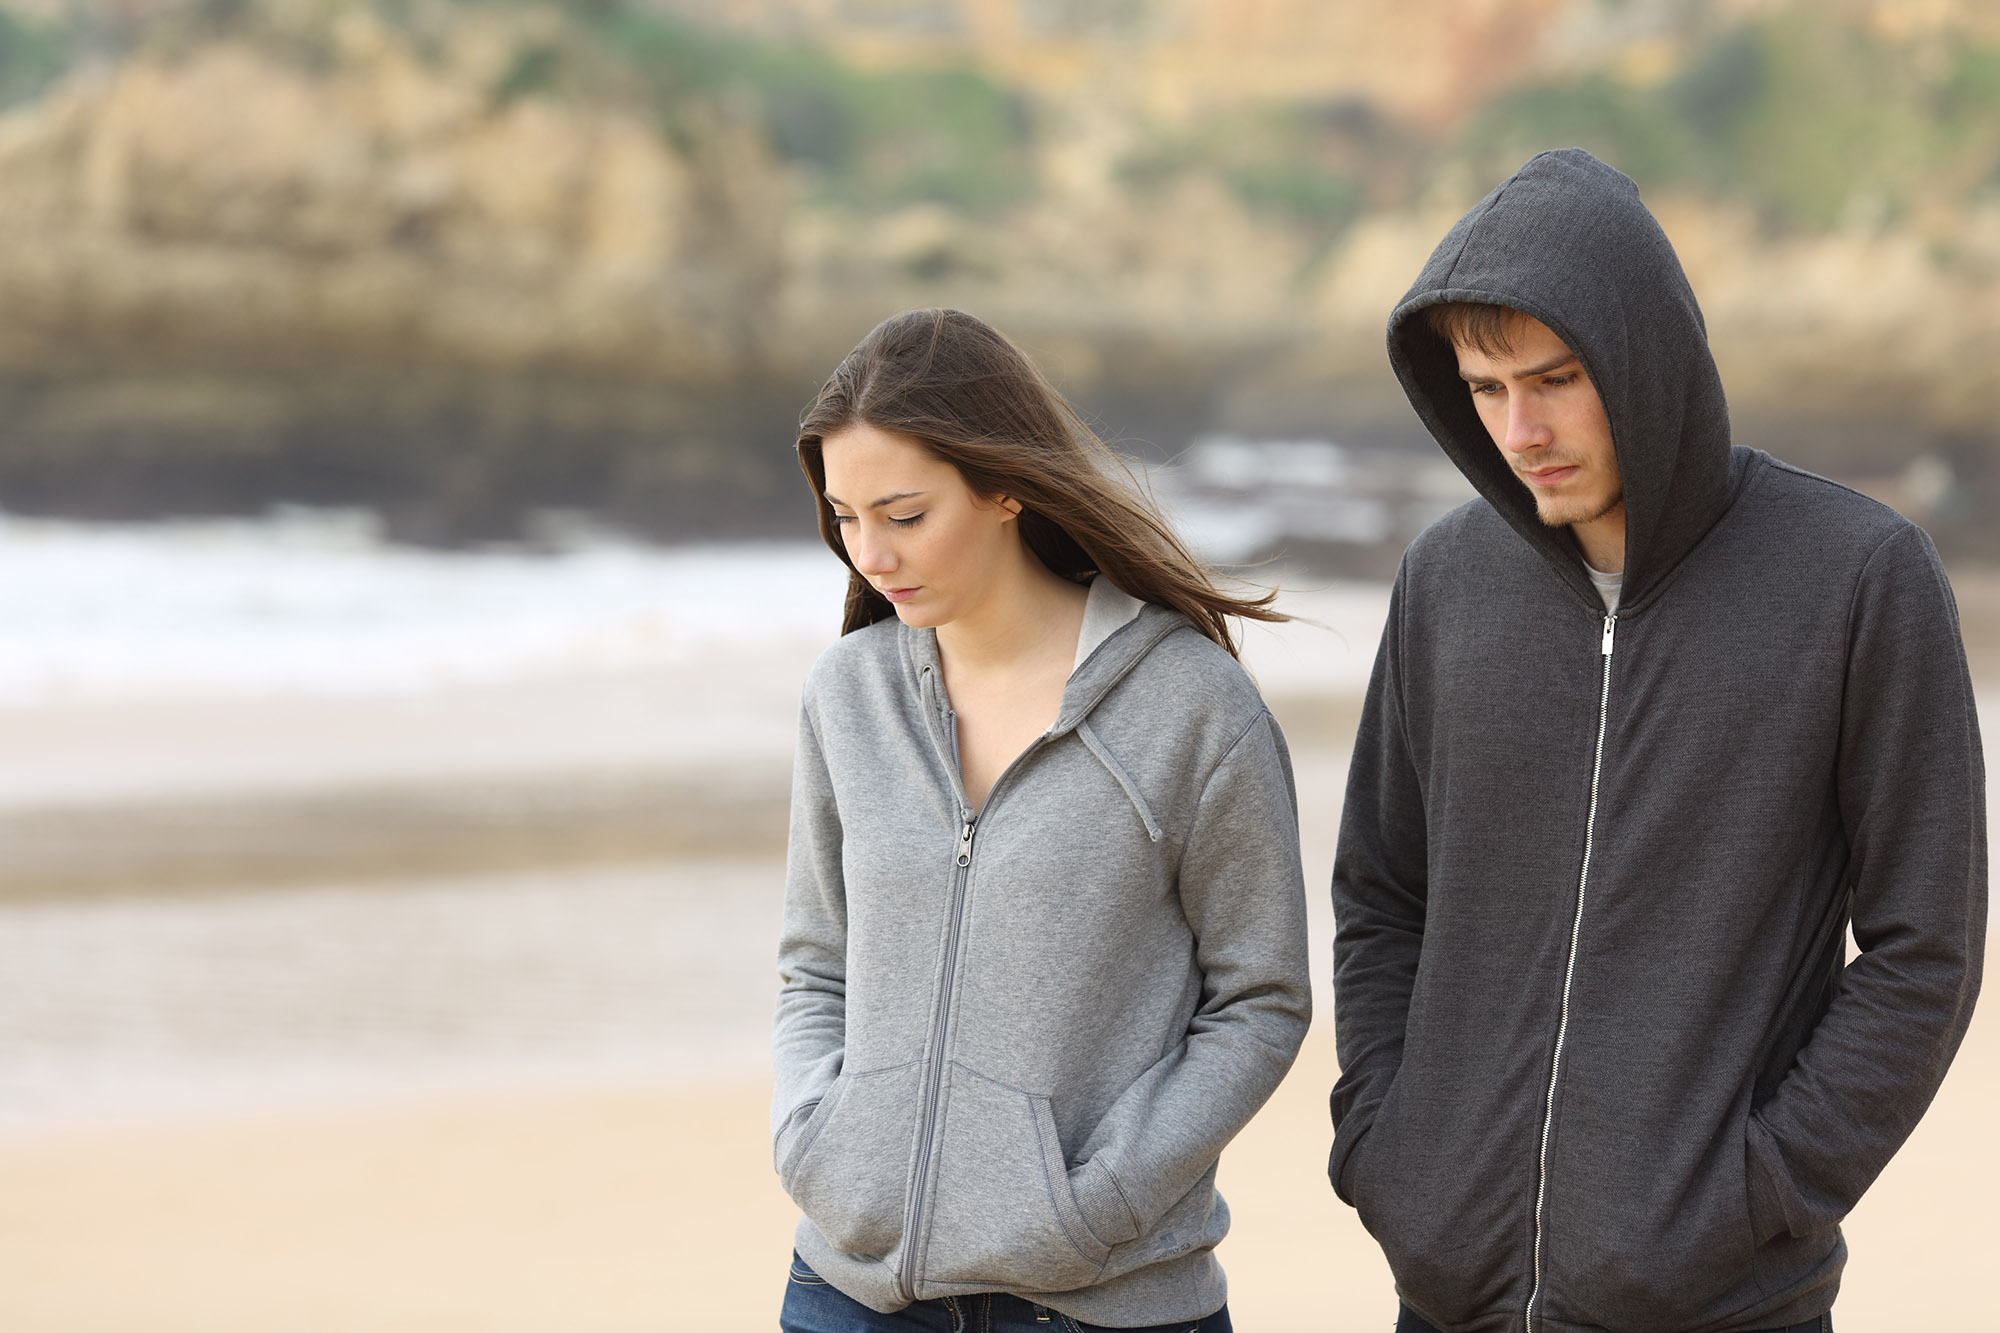 Couple of angry and sad teenagers together walking on the beach